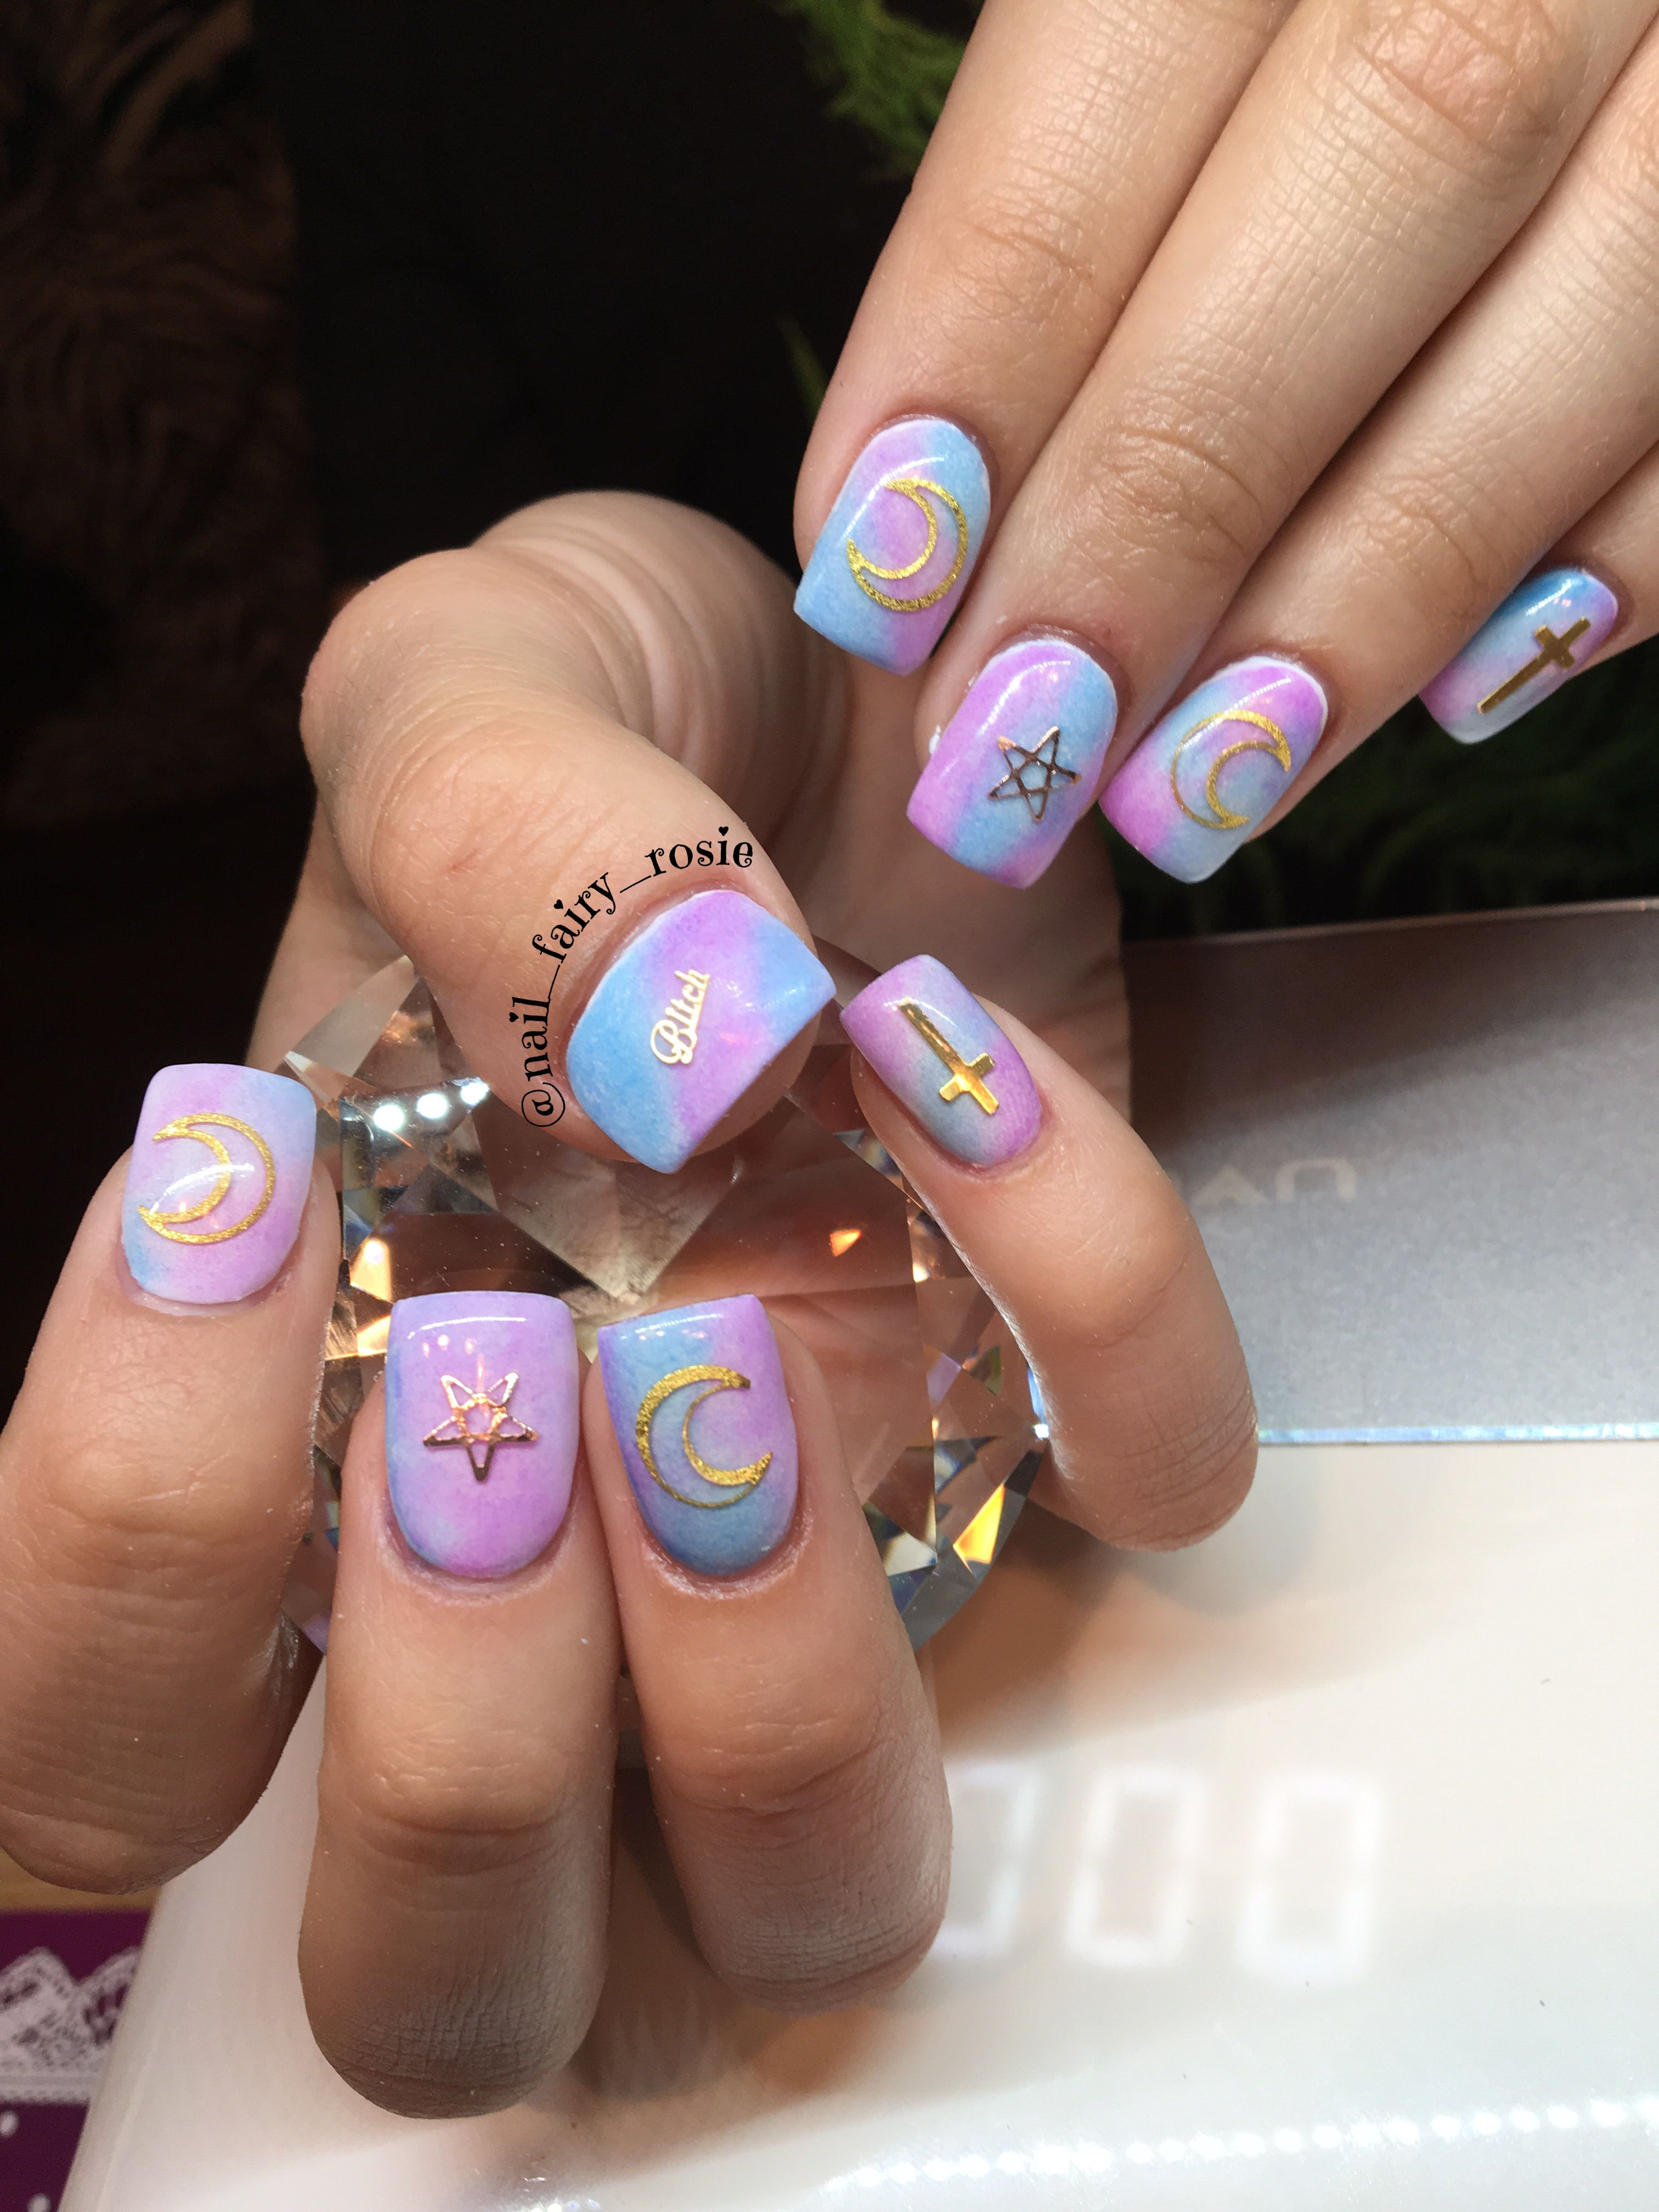 Unicorn Nails Wiccan Inspired Nails Short Gel Nail Design Glow In The Dark Nails Short Gel Nails Unicorn Nails Gel Nail Design